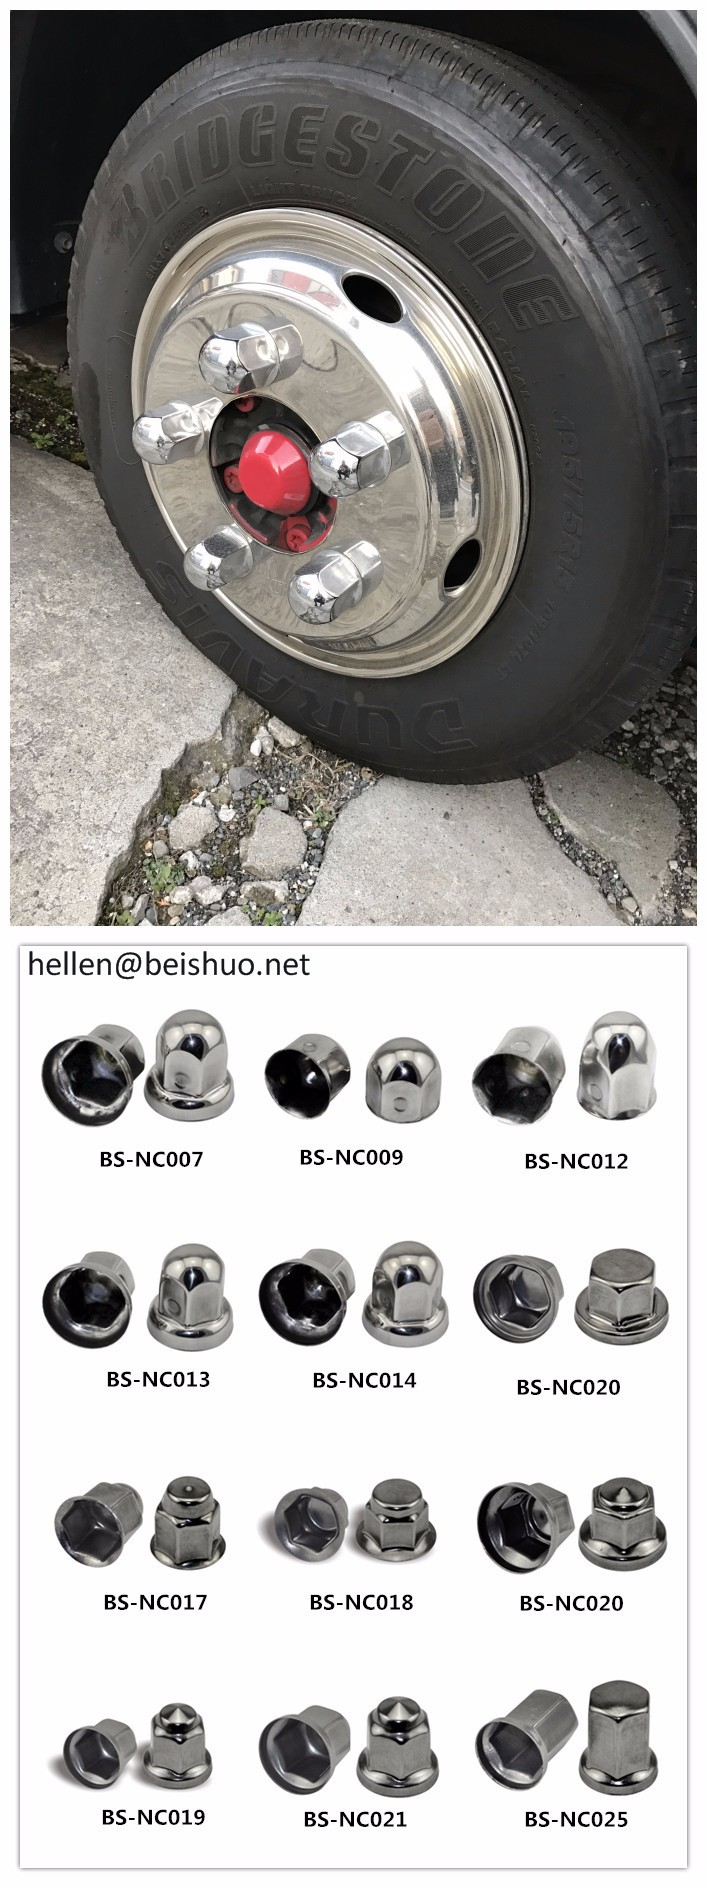 8d45cc79a58 Beishuo 33Mm China Suppliers Cheap Semi Truck Nut Cover Caps Wheel Caps